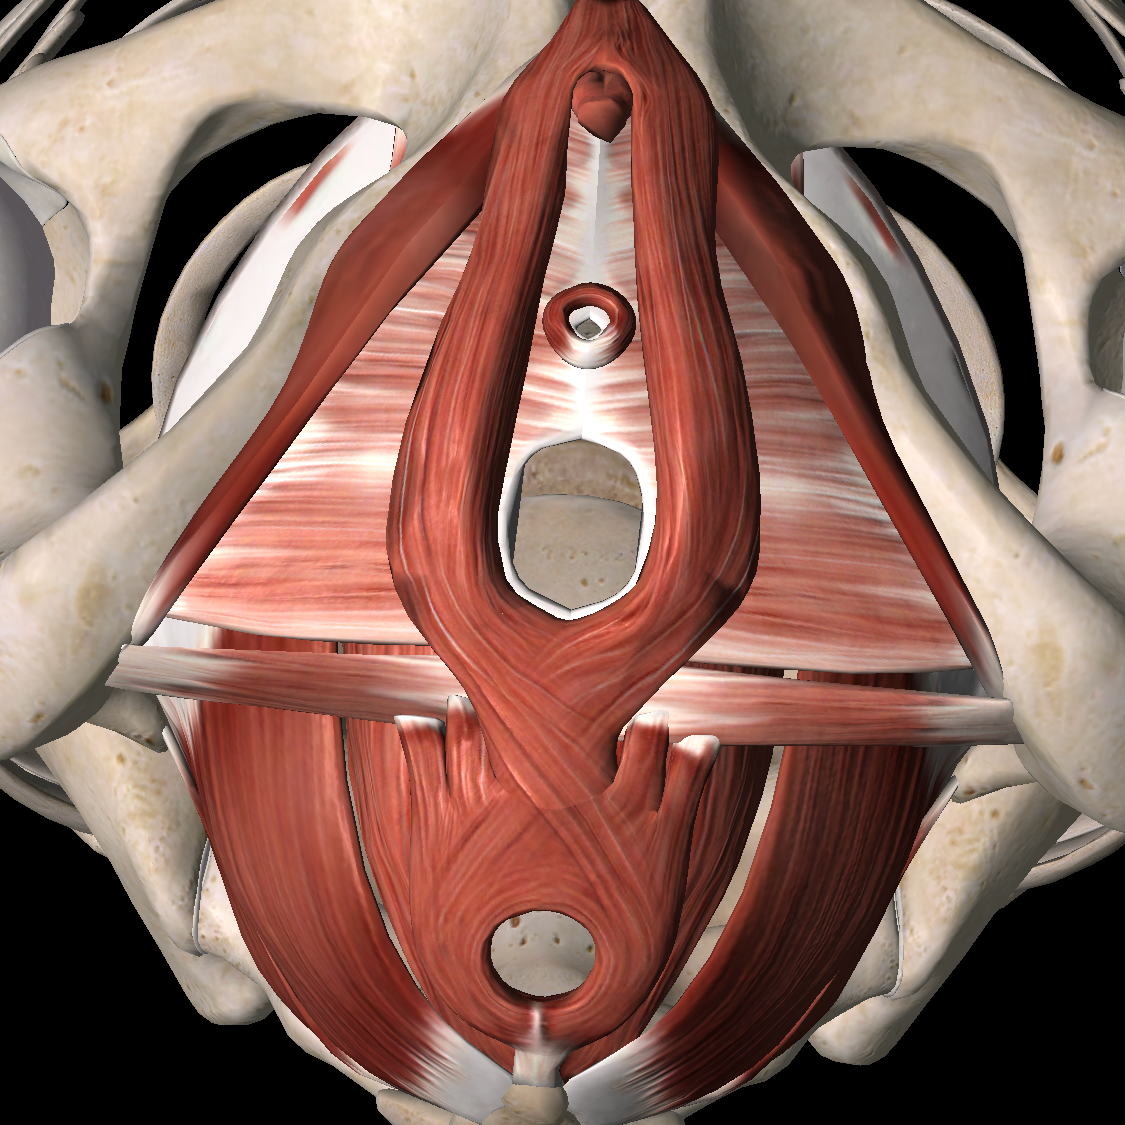 This is a view of the female pelvic floor muscles from below, or looking up at the bottom of the bowl of the pelvis. Note in both photos the 3 outlets of the PFMs: the urethral opening, the vagina, and the anus.